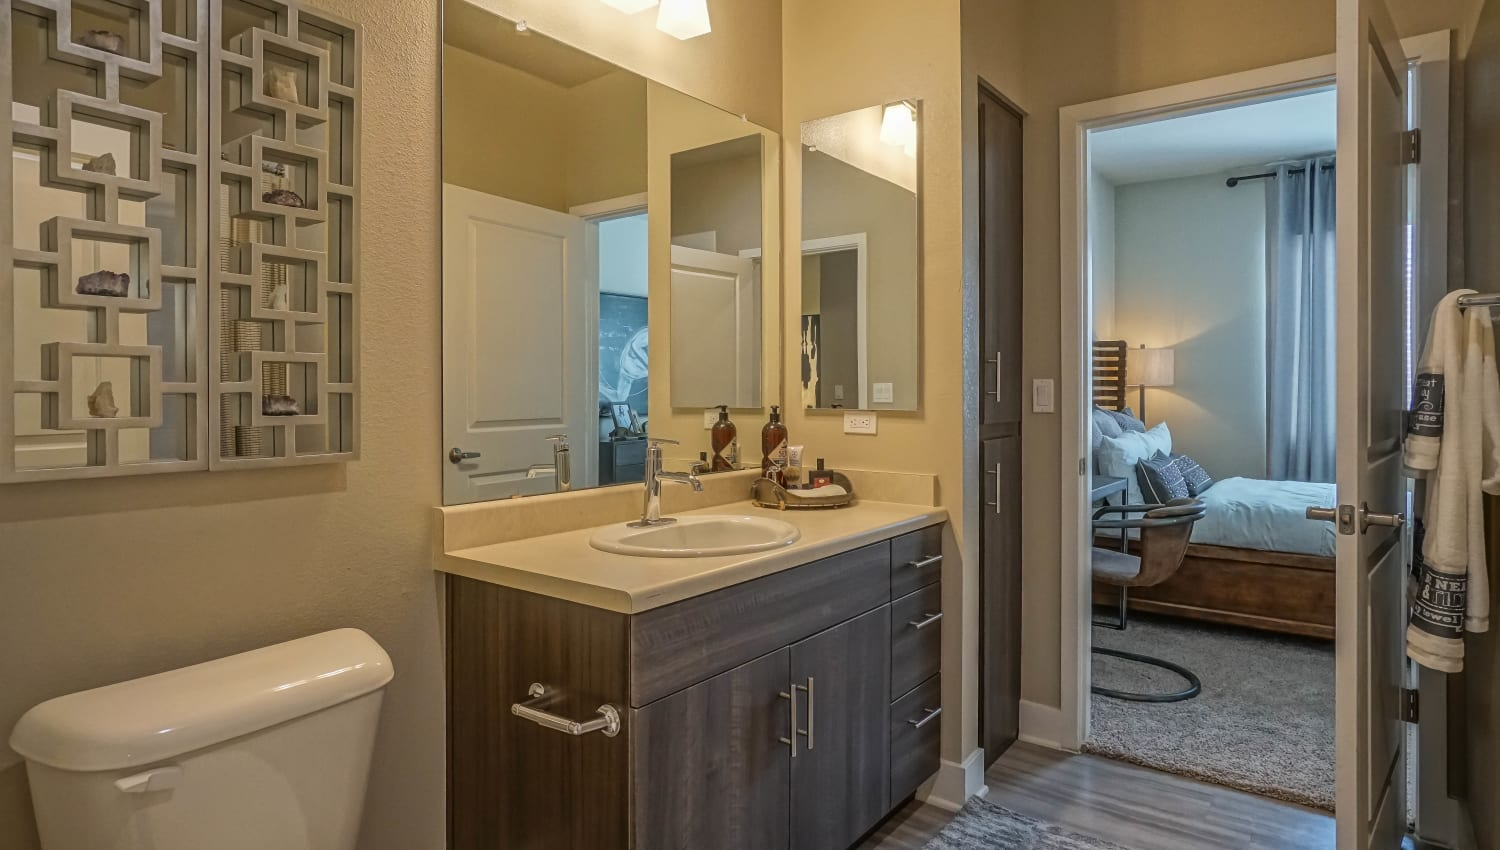 Large vanity mirror in the master bathroom of a model home at Olympus Northpoint in Albuquerque, New Mexico